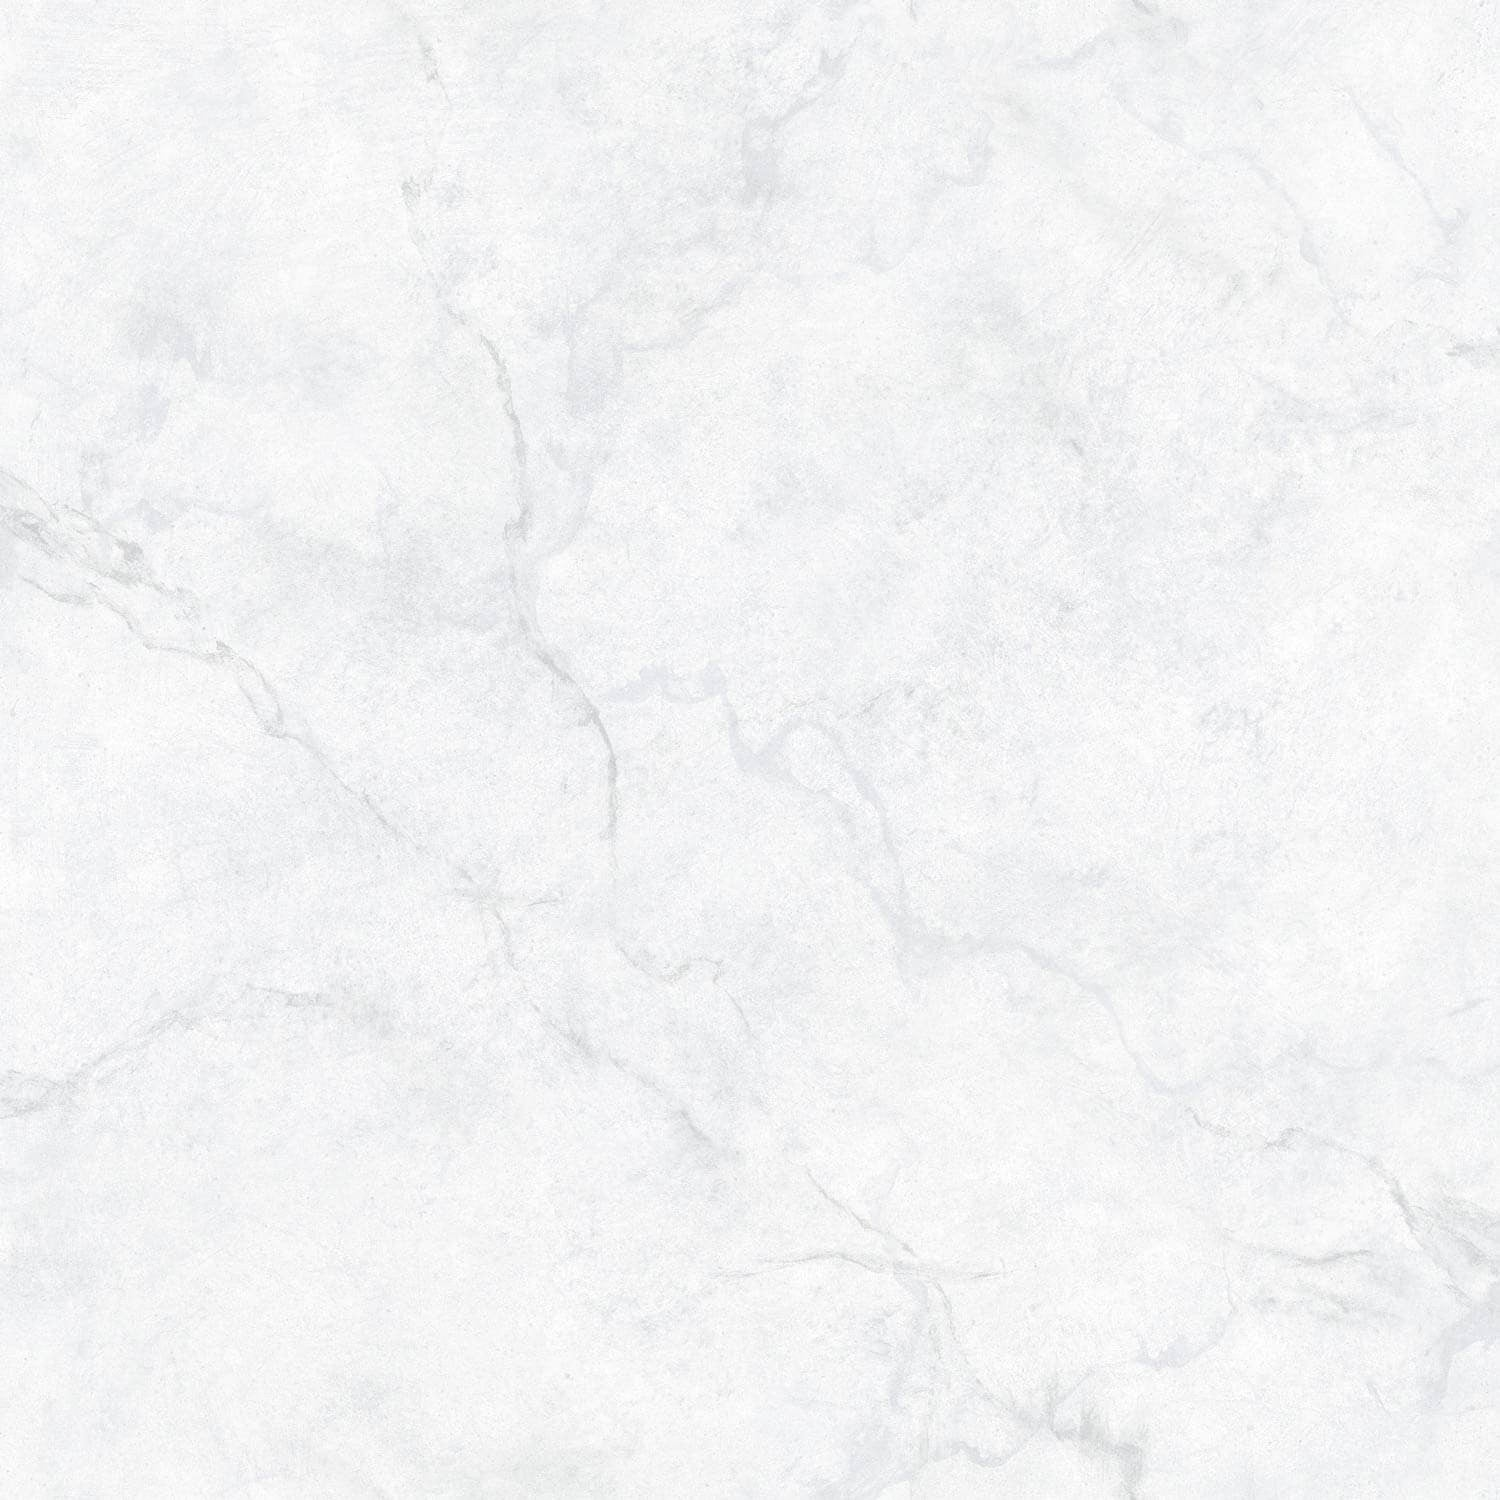 Peel And Stick Temporary Wall Paper White Marble Dormify